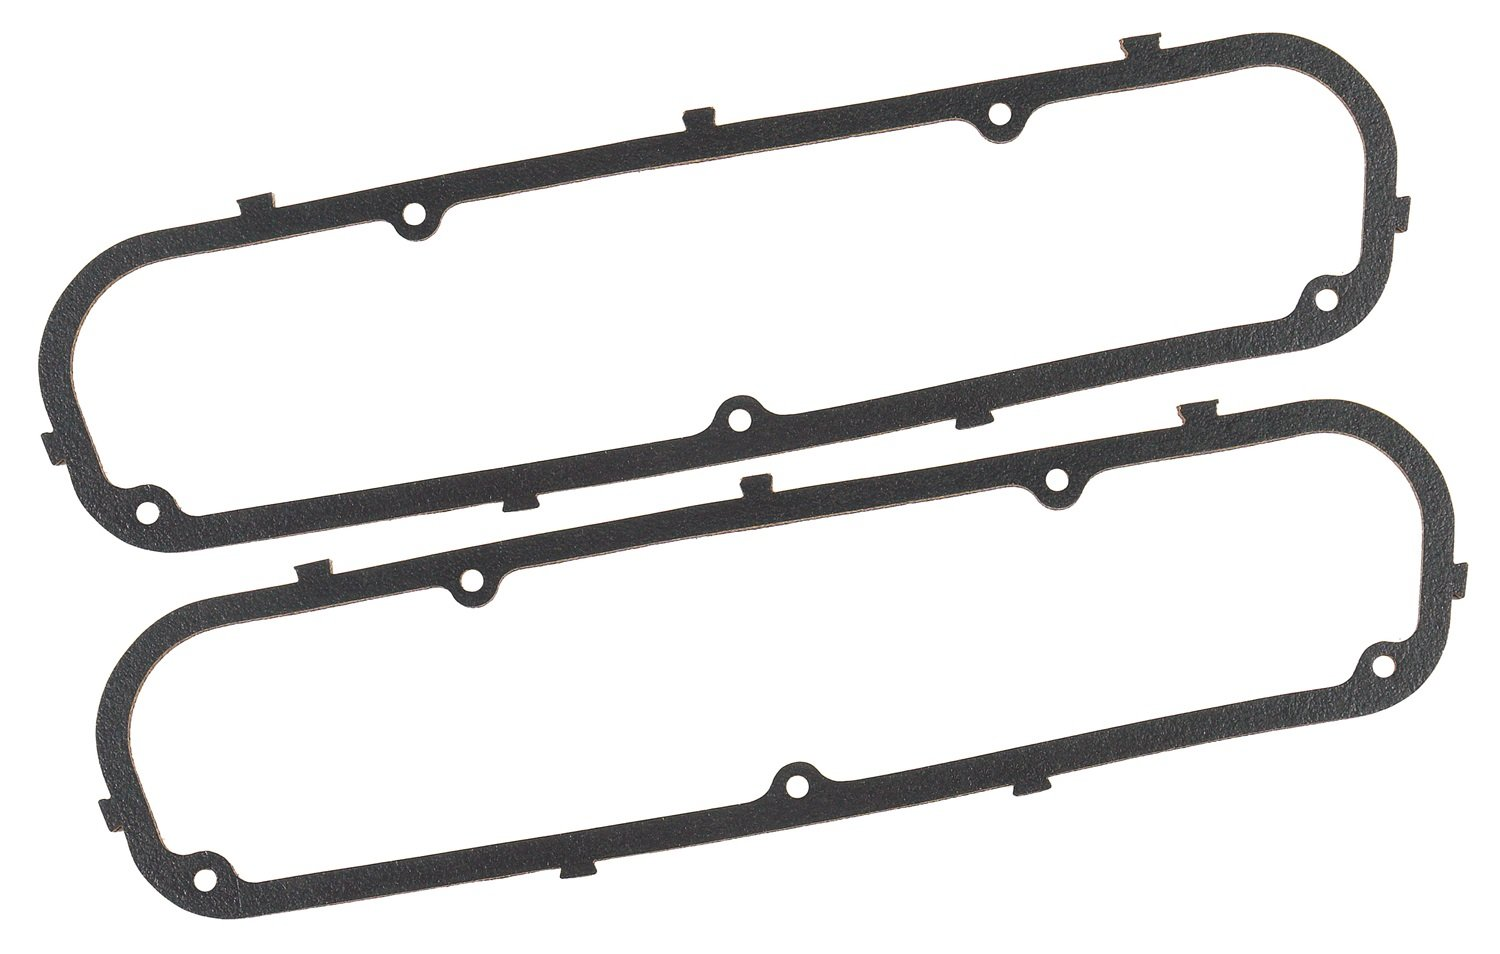 Mr. Gasket 5876 Ultra-Seal Valve Cover Gasket Set by Mr. Gasket